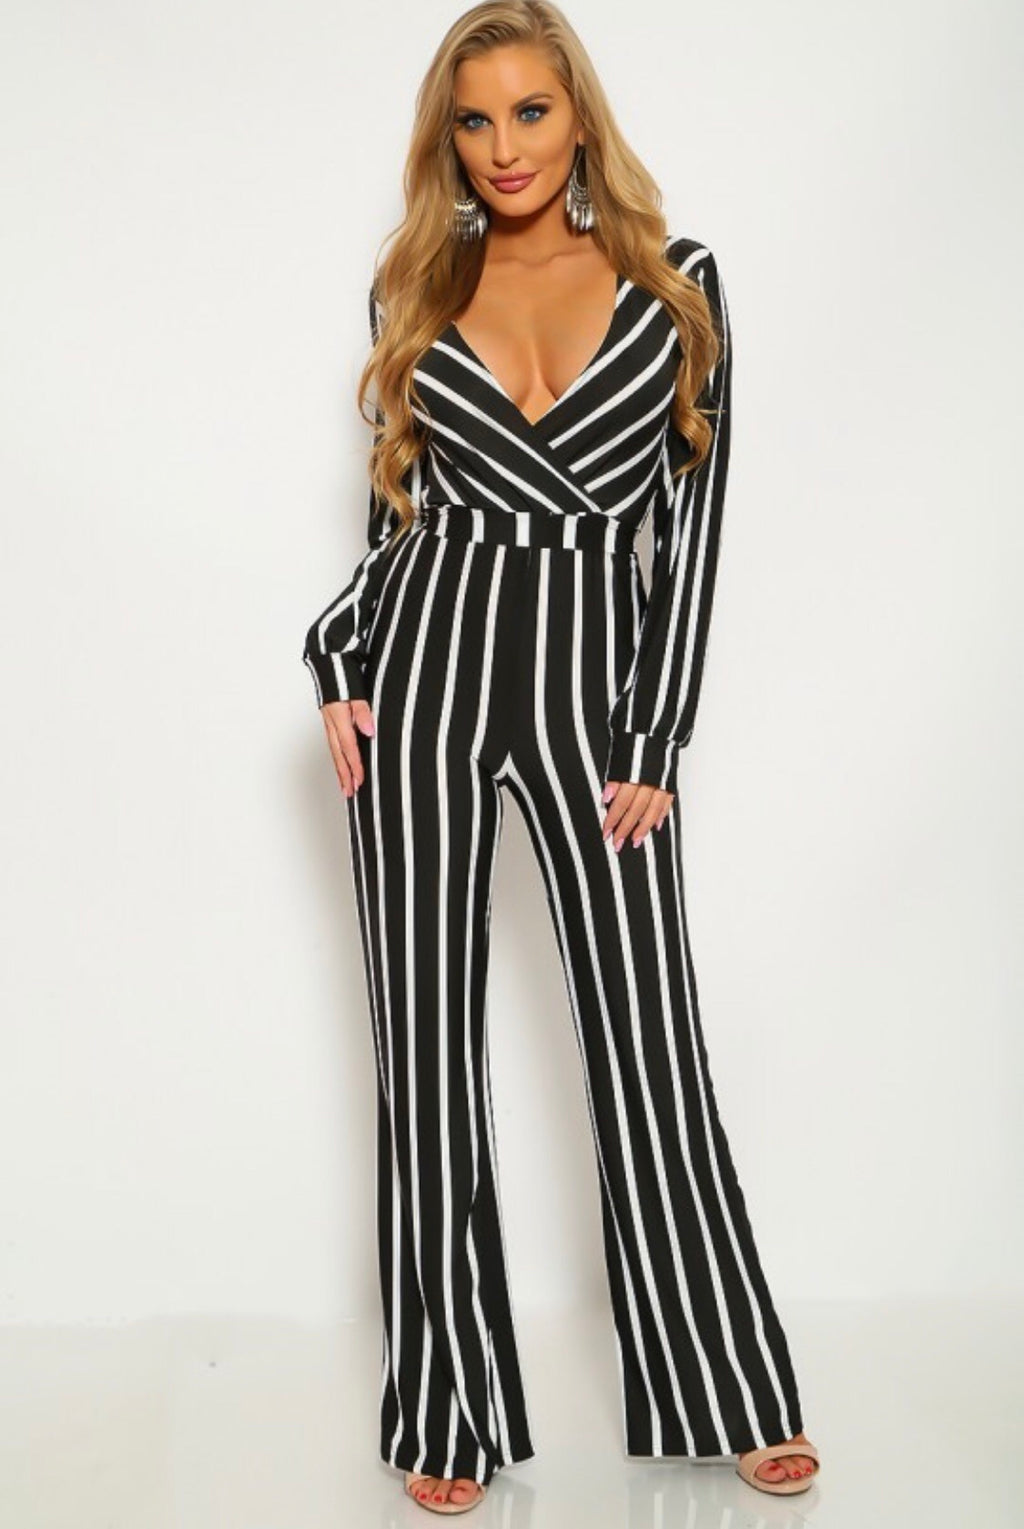 Boss Lady Jumpsuit - The Divaz Closet